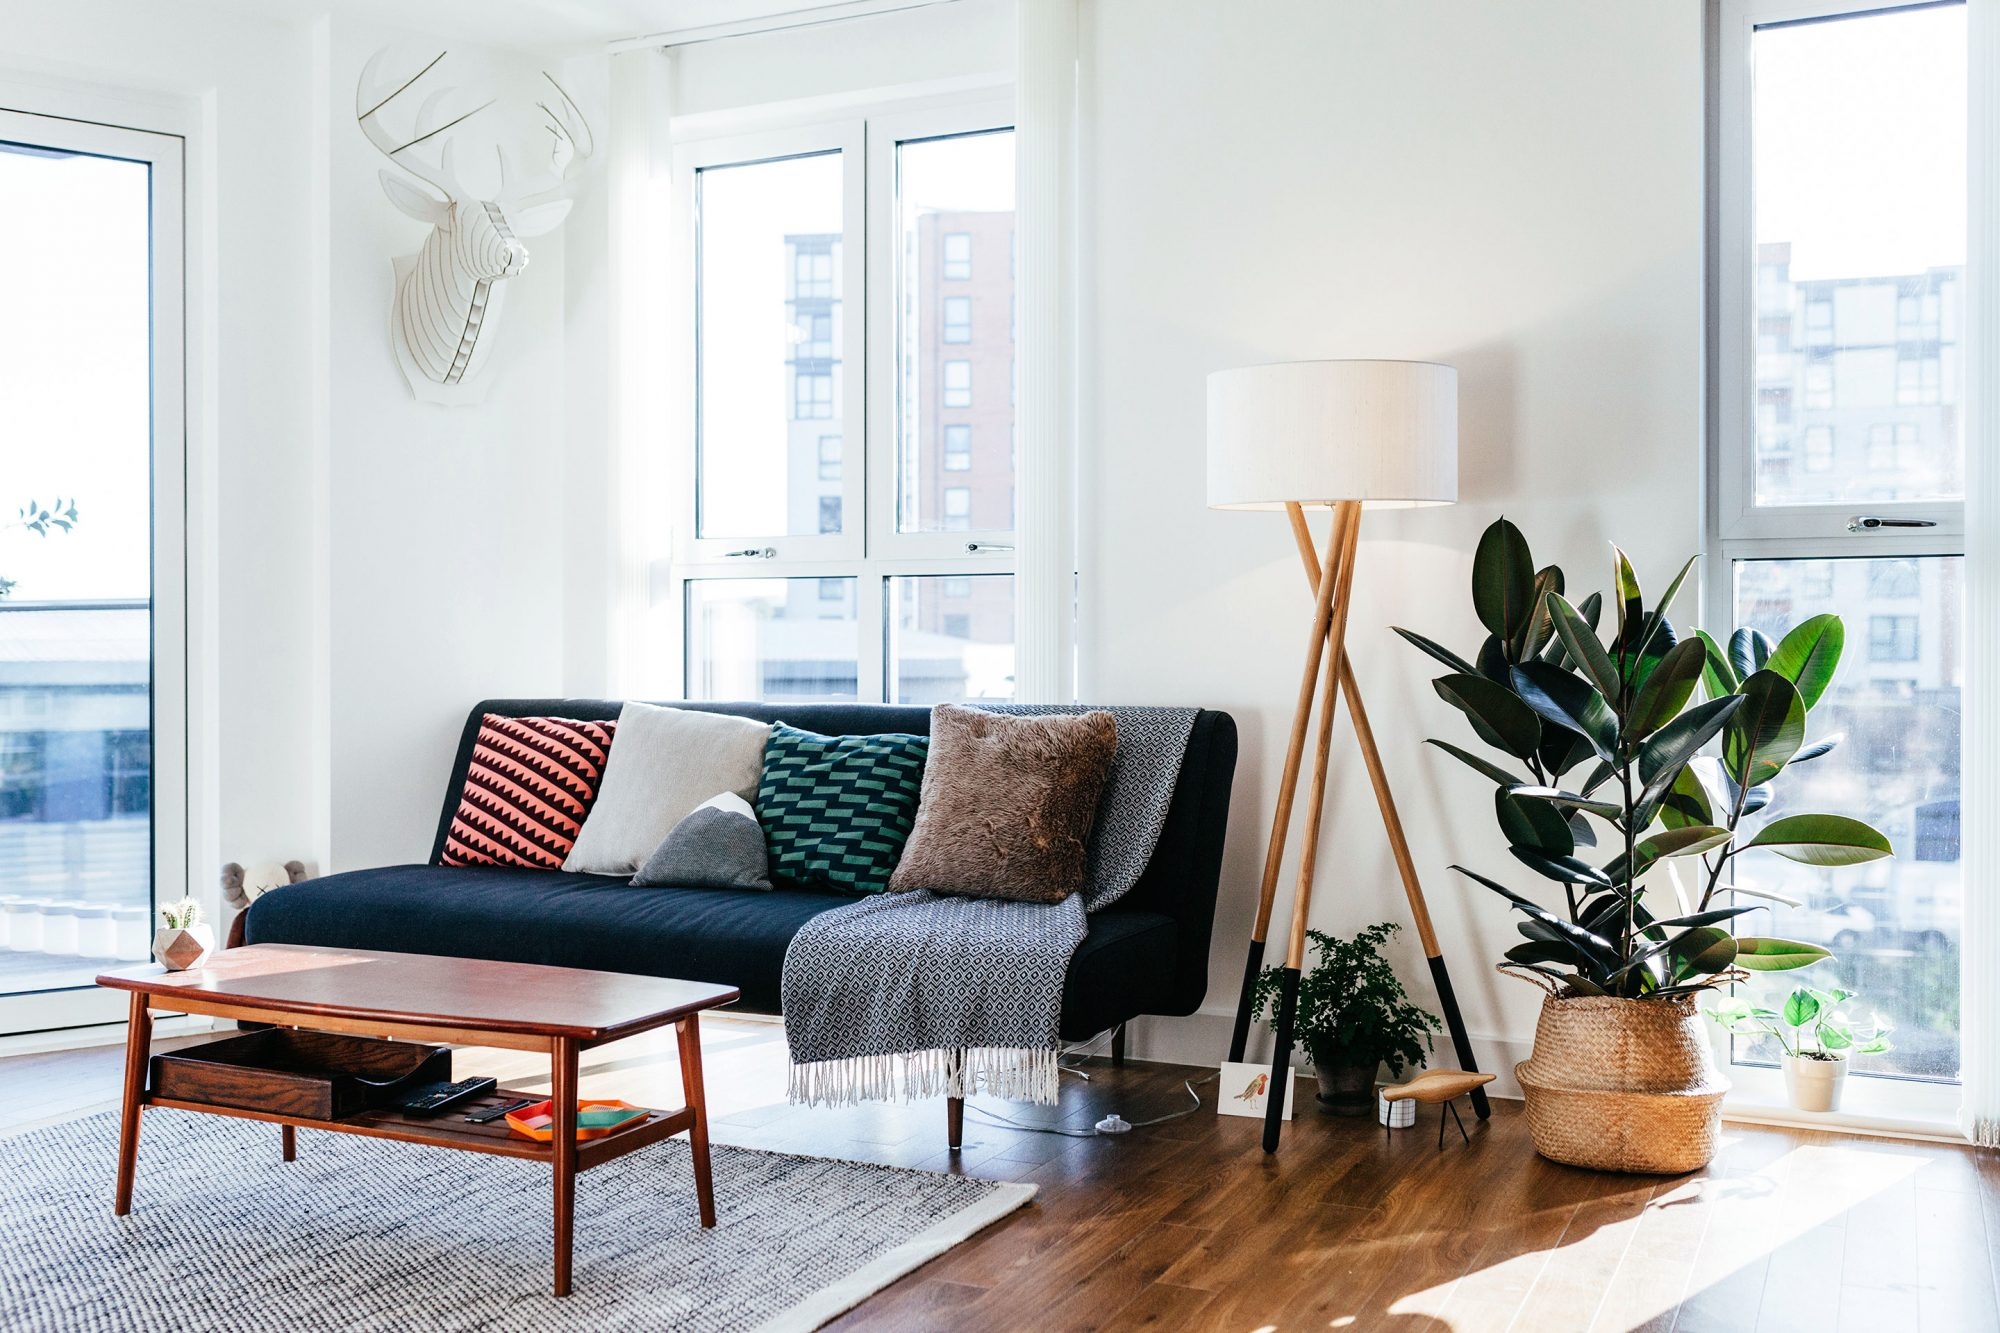 6 Affordable Renovations That Will Instantly Boost Your Home Value fix05_n